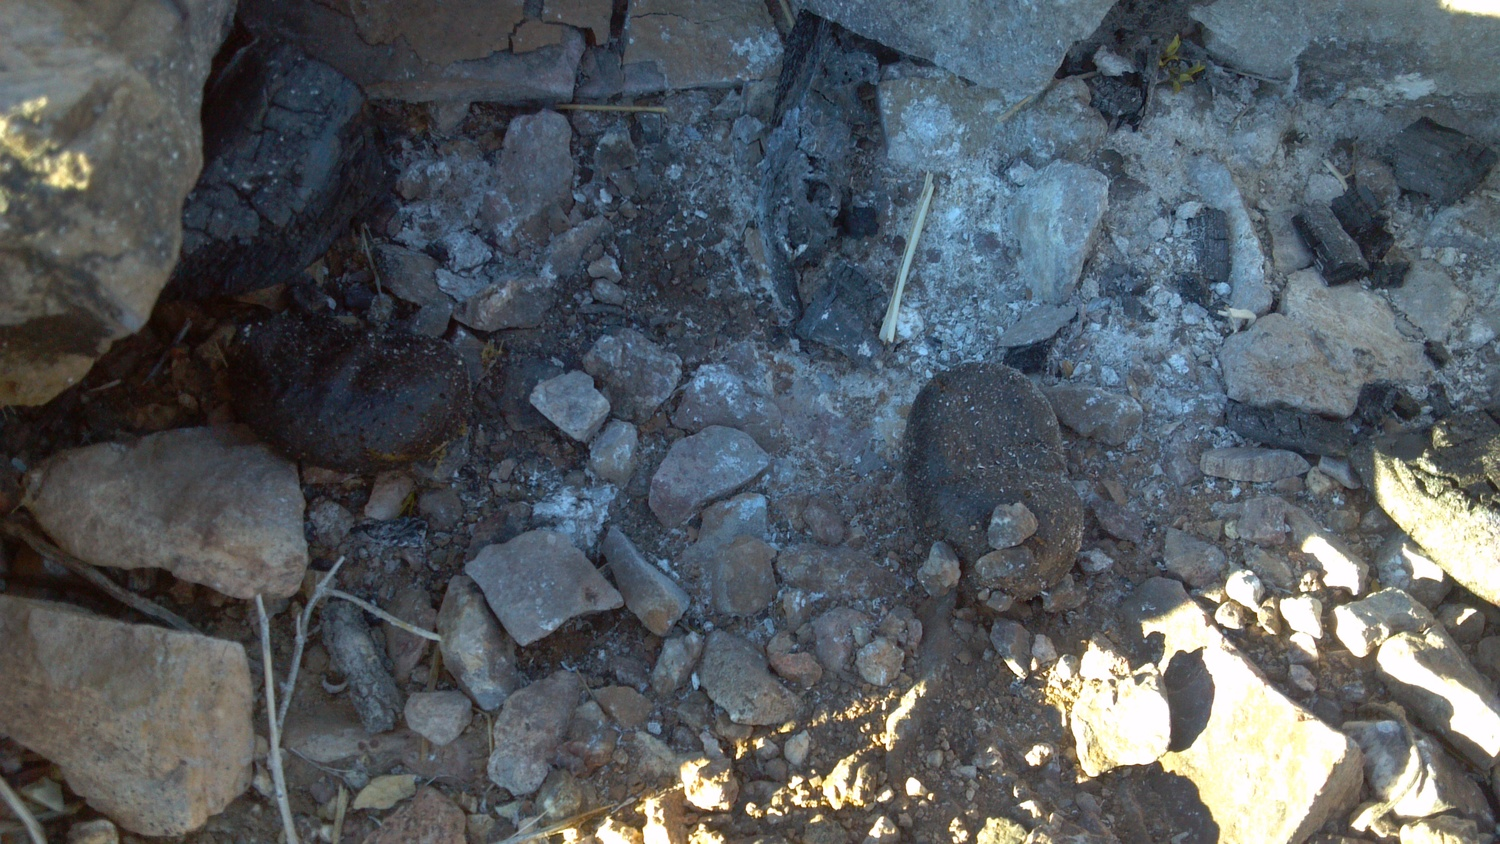 Burro feces in the fire pit. - Photo Larry Atkins